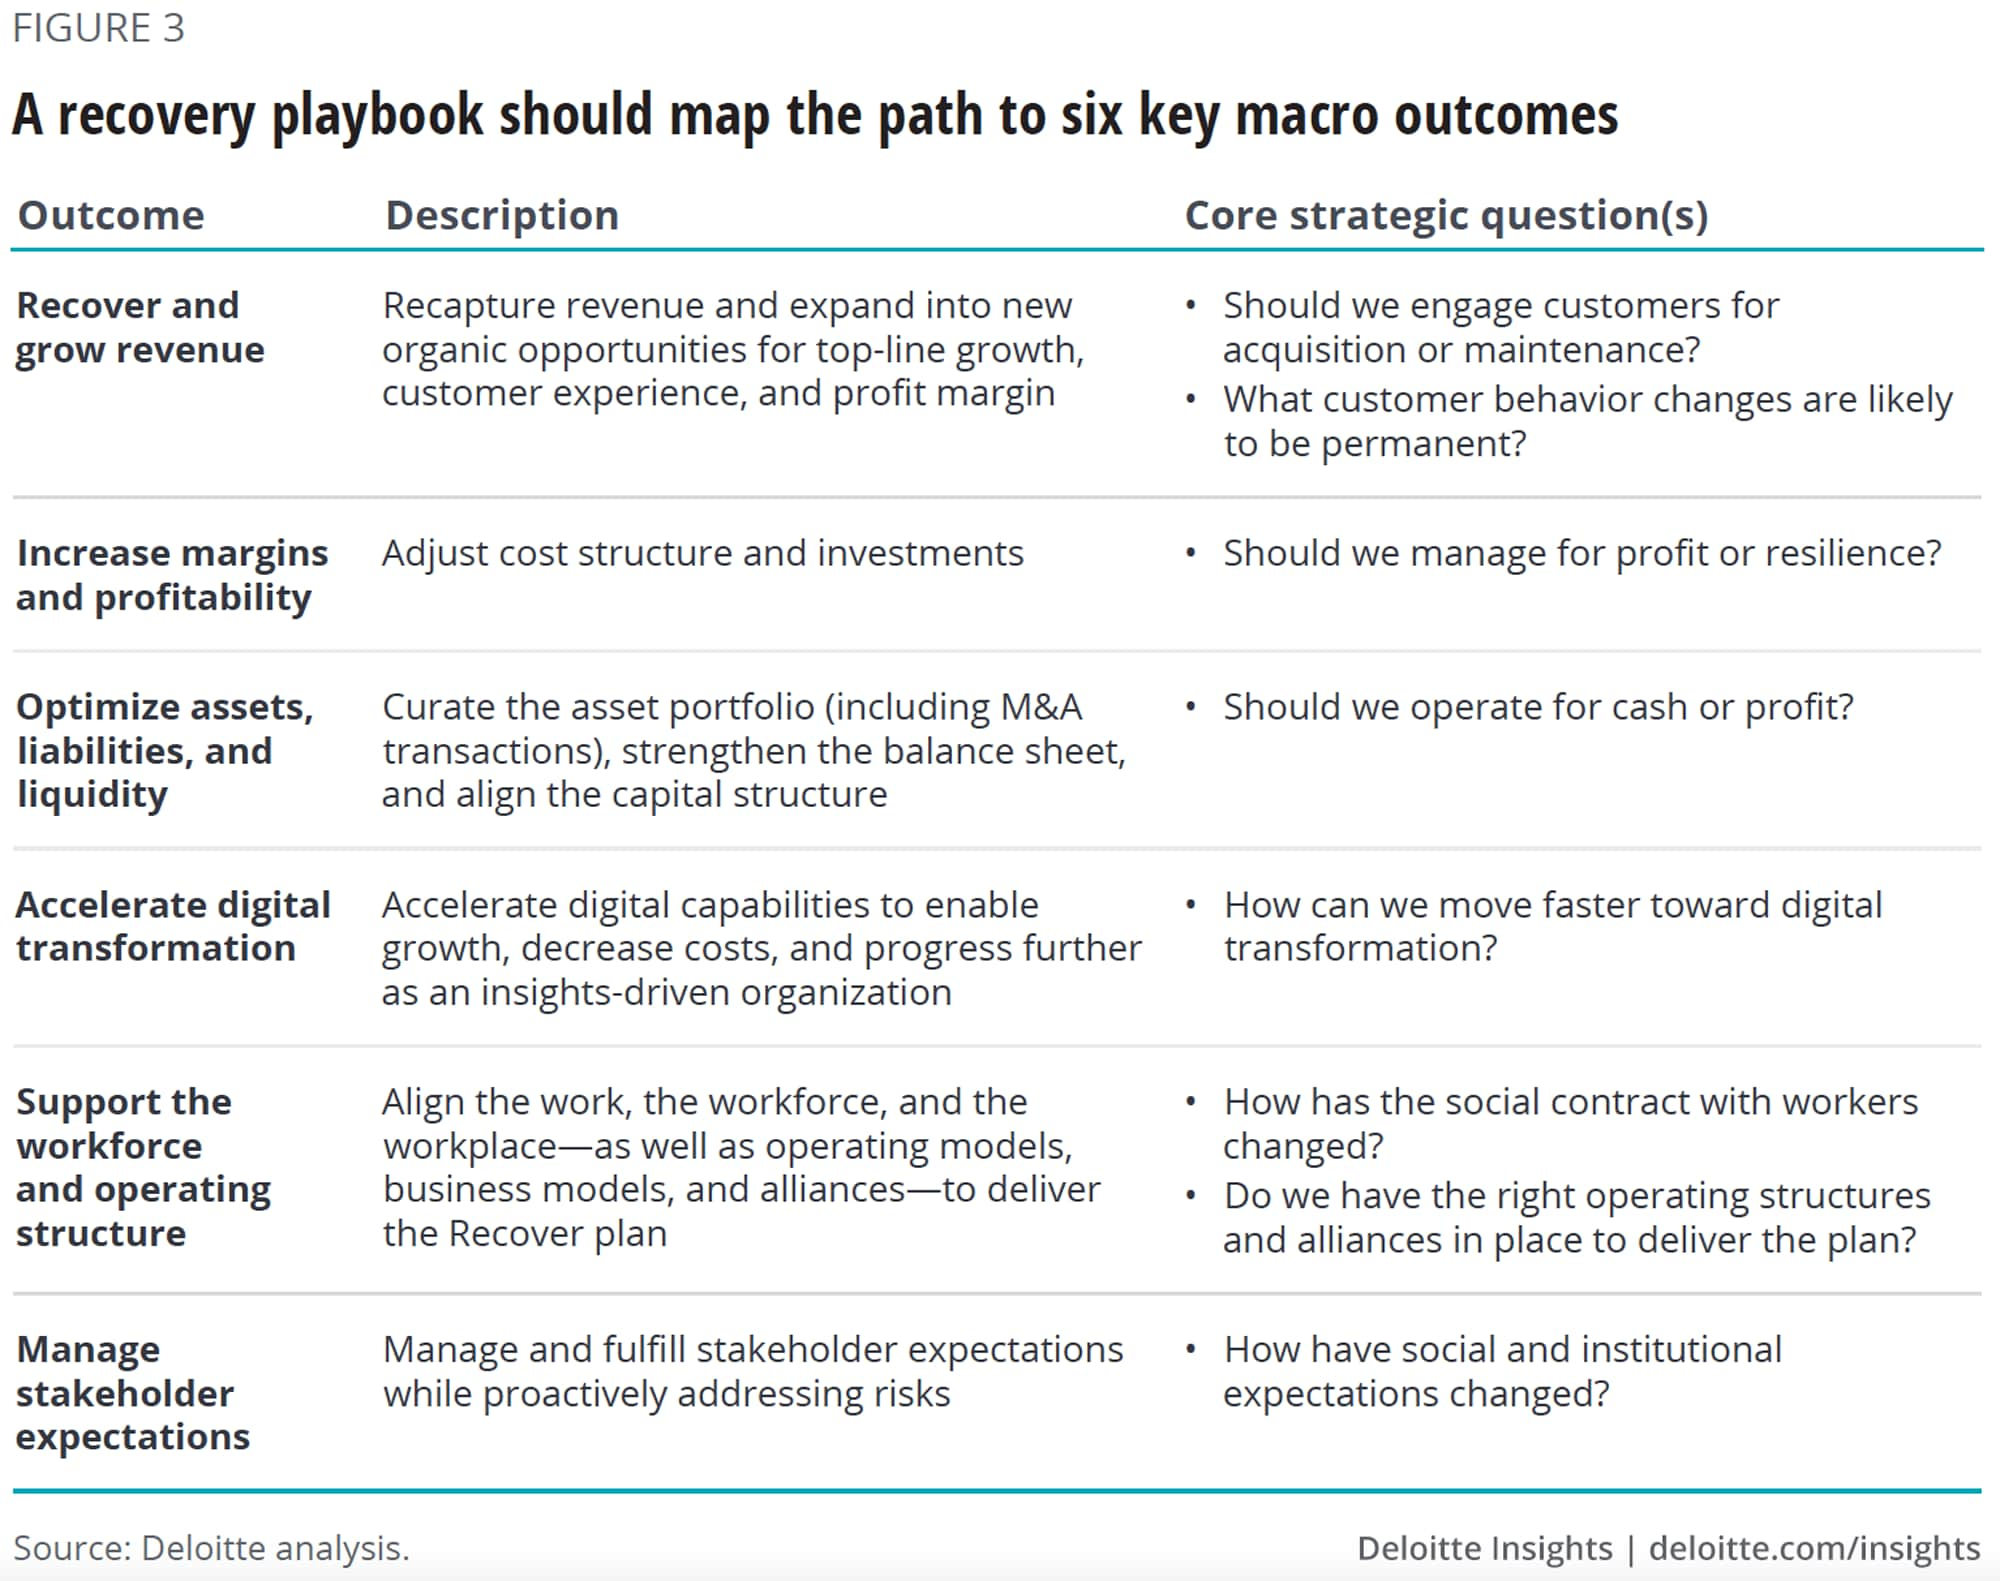 A recovery playbook should map the path to six key macro outcomes